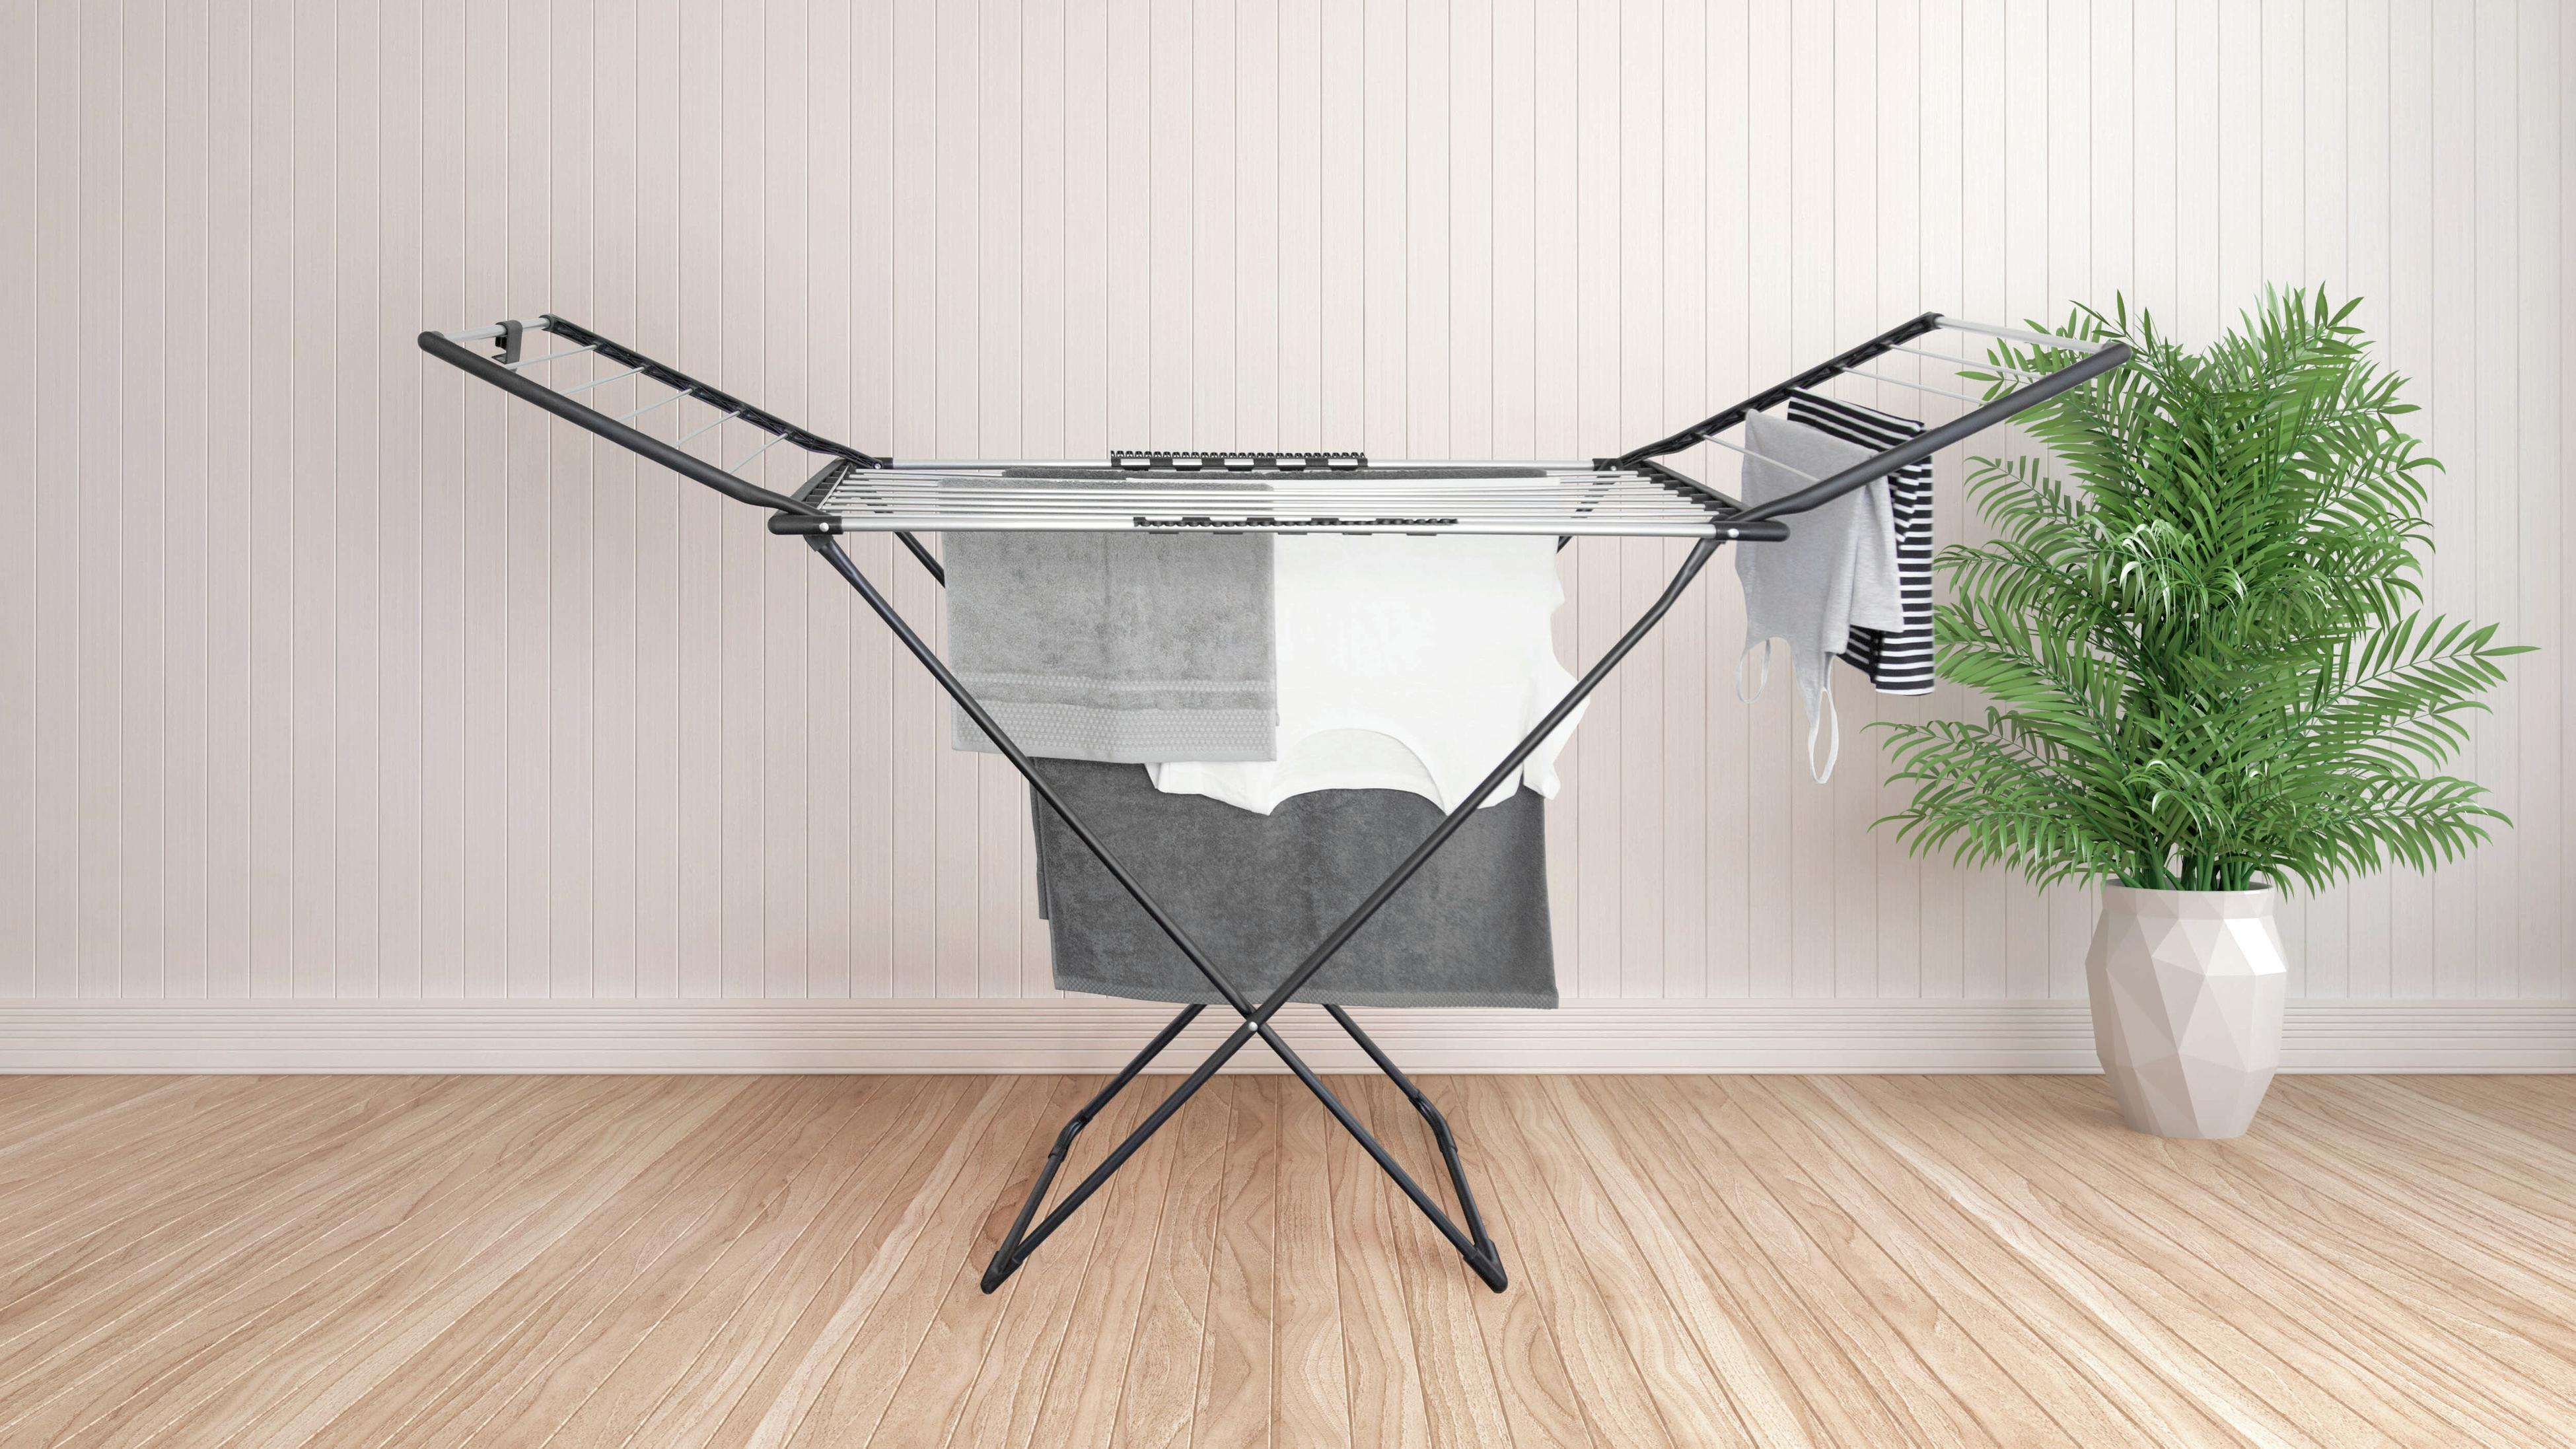 Portable clothes drying rack with clothes on it in a living room